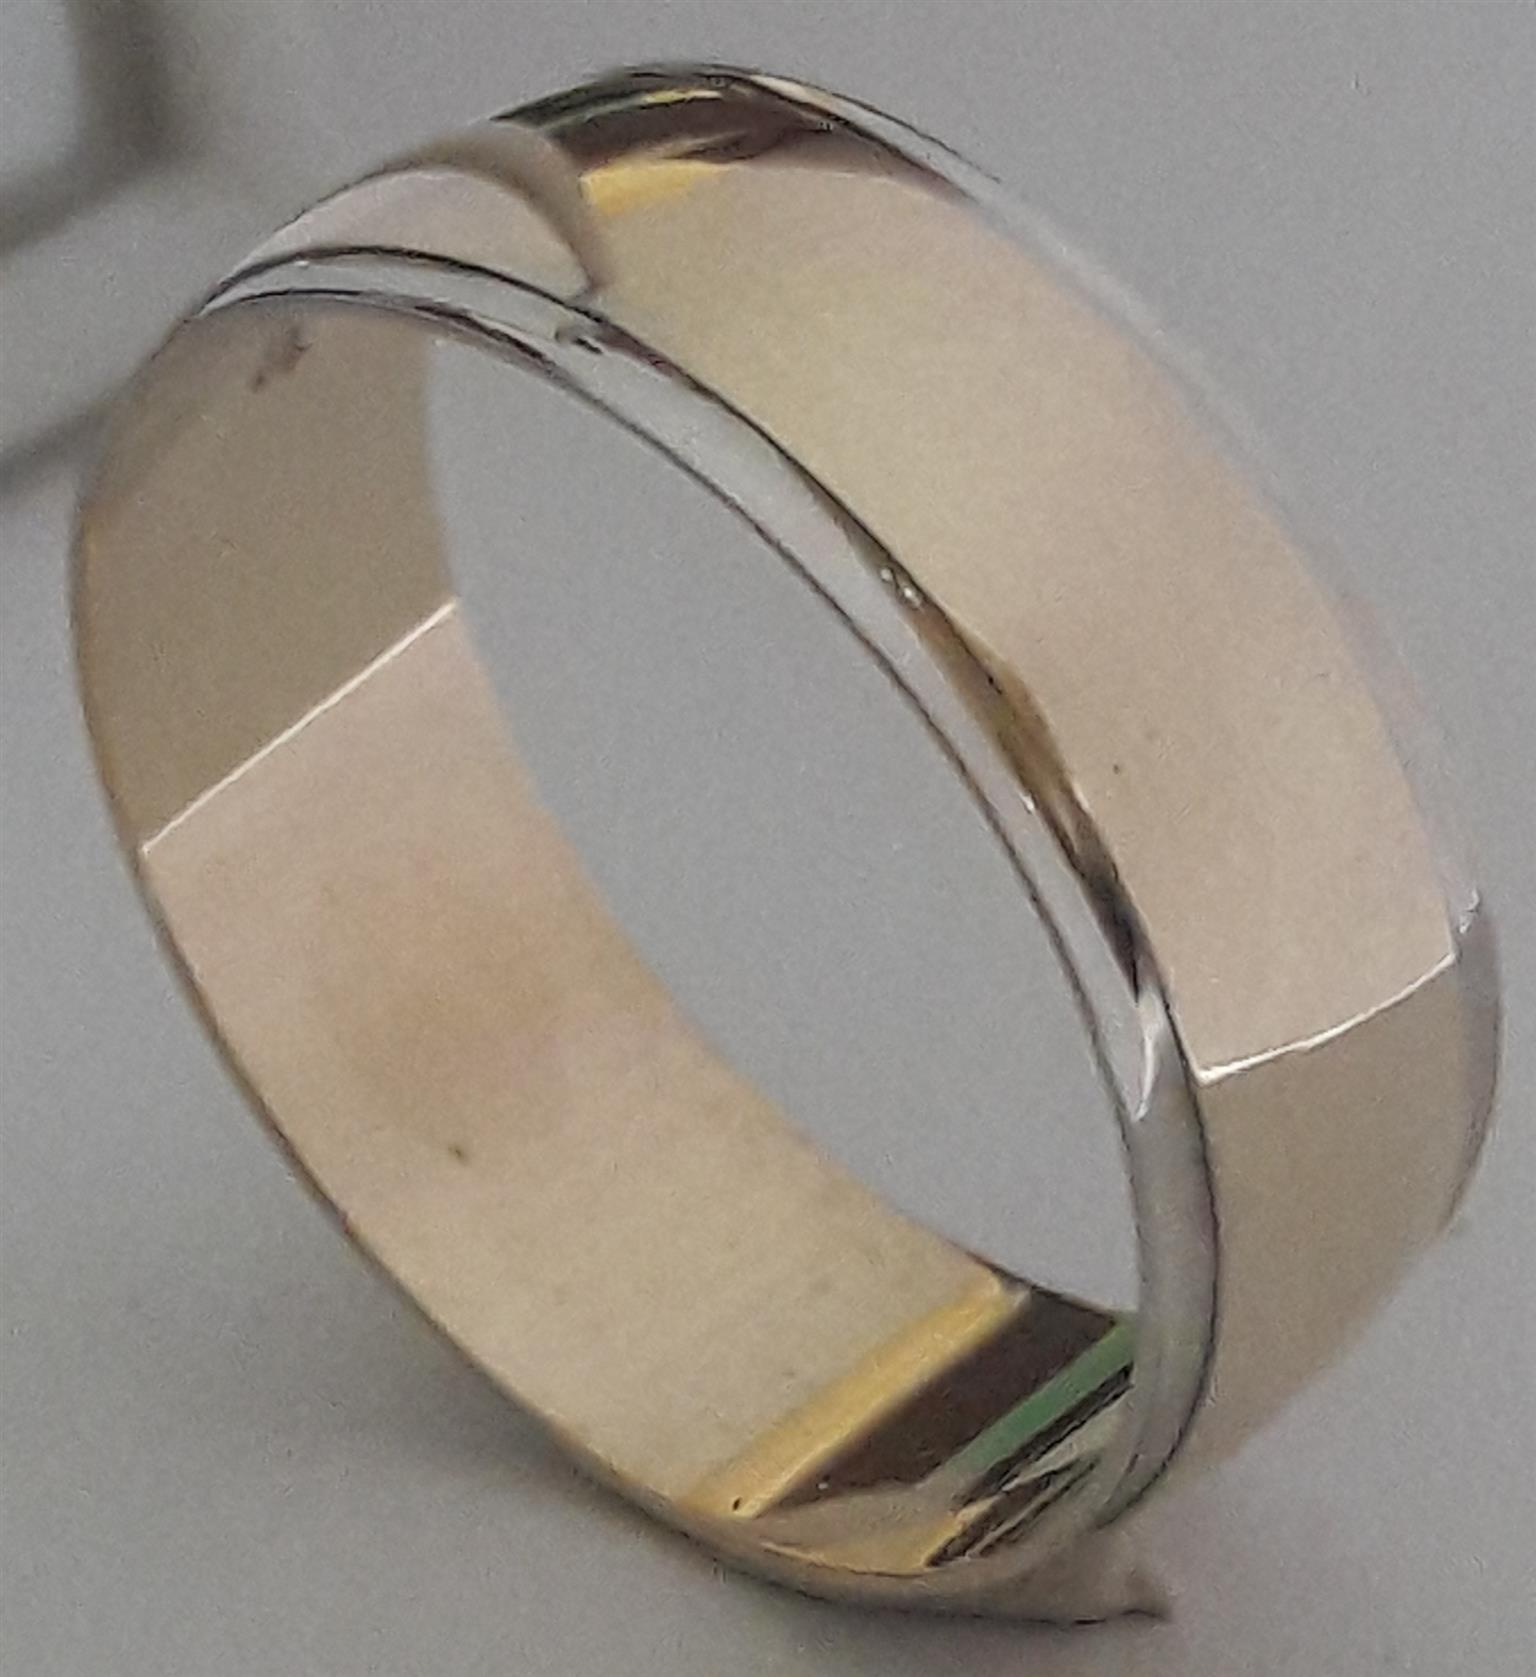 9ct Golden men's wedding ring with white Gold lining